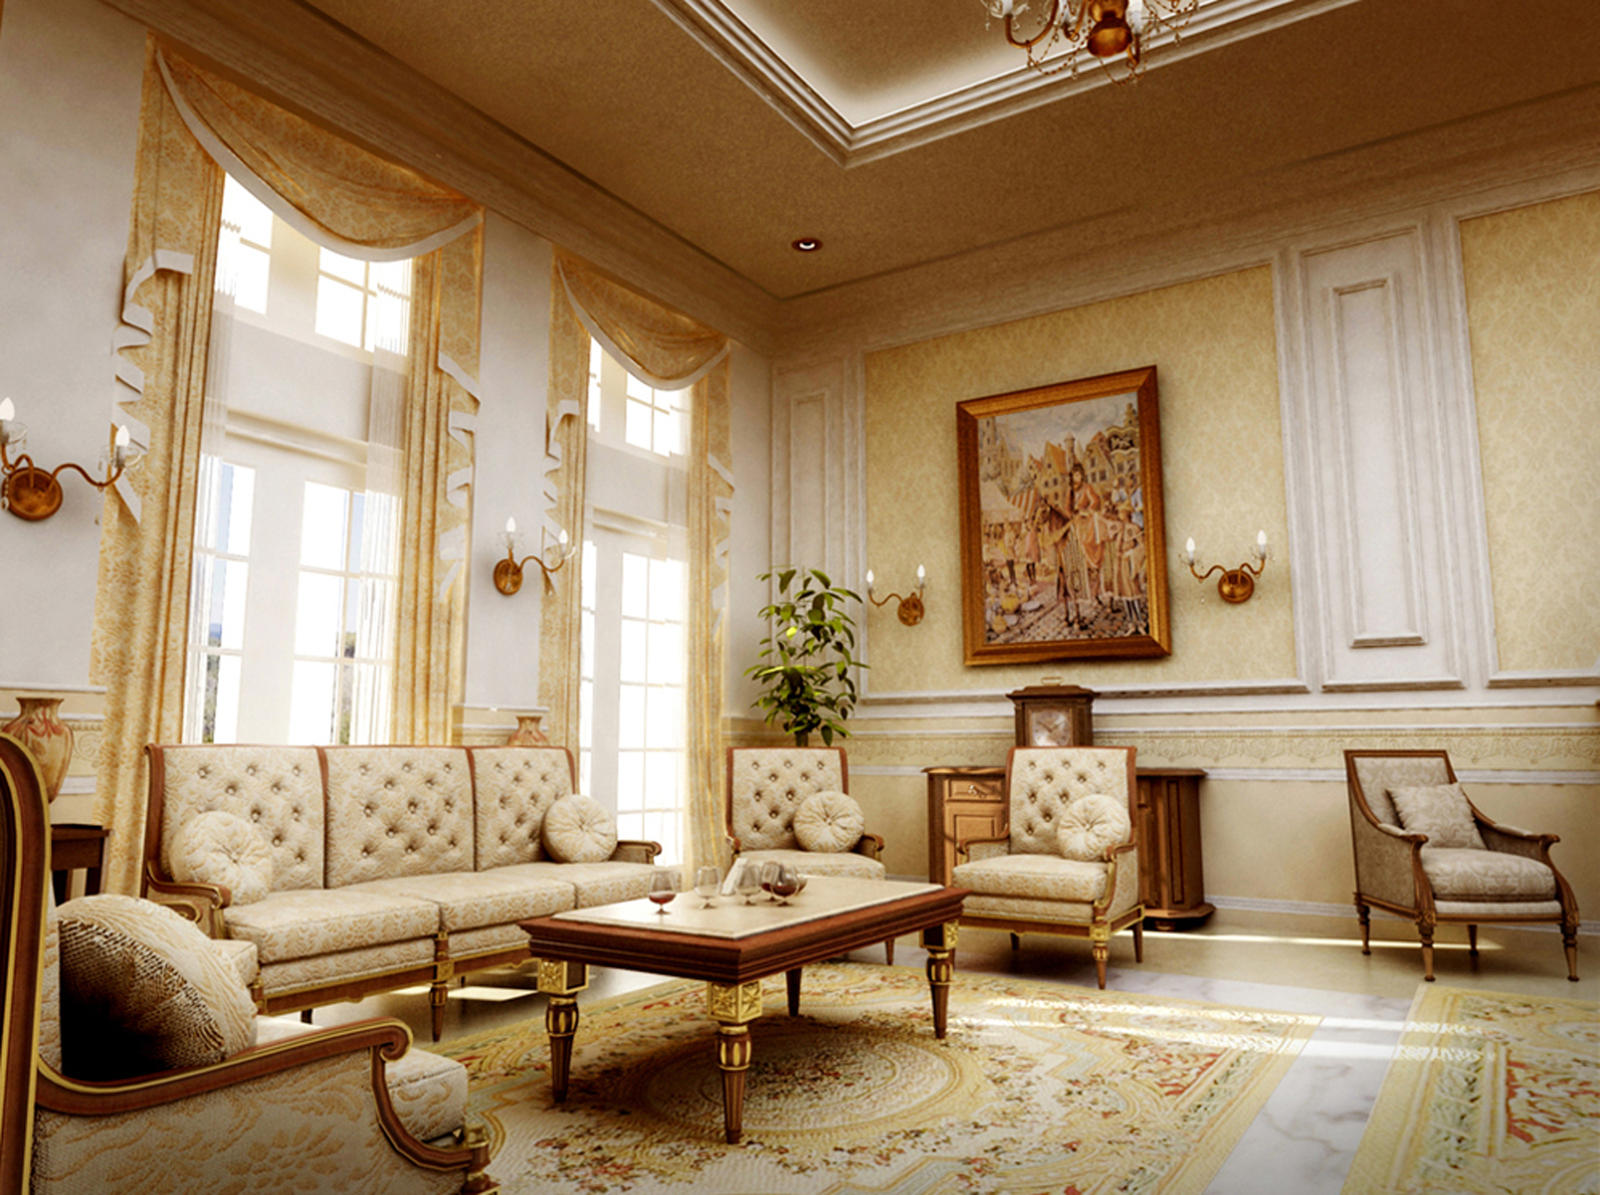 Classic Interior By Aboushady81 On DeviantArt